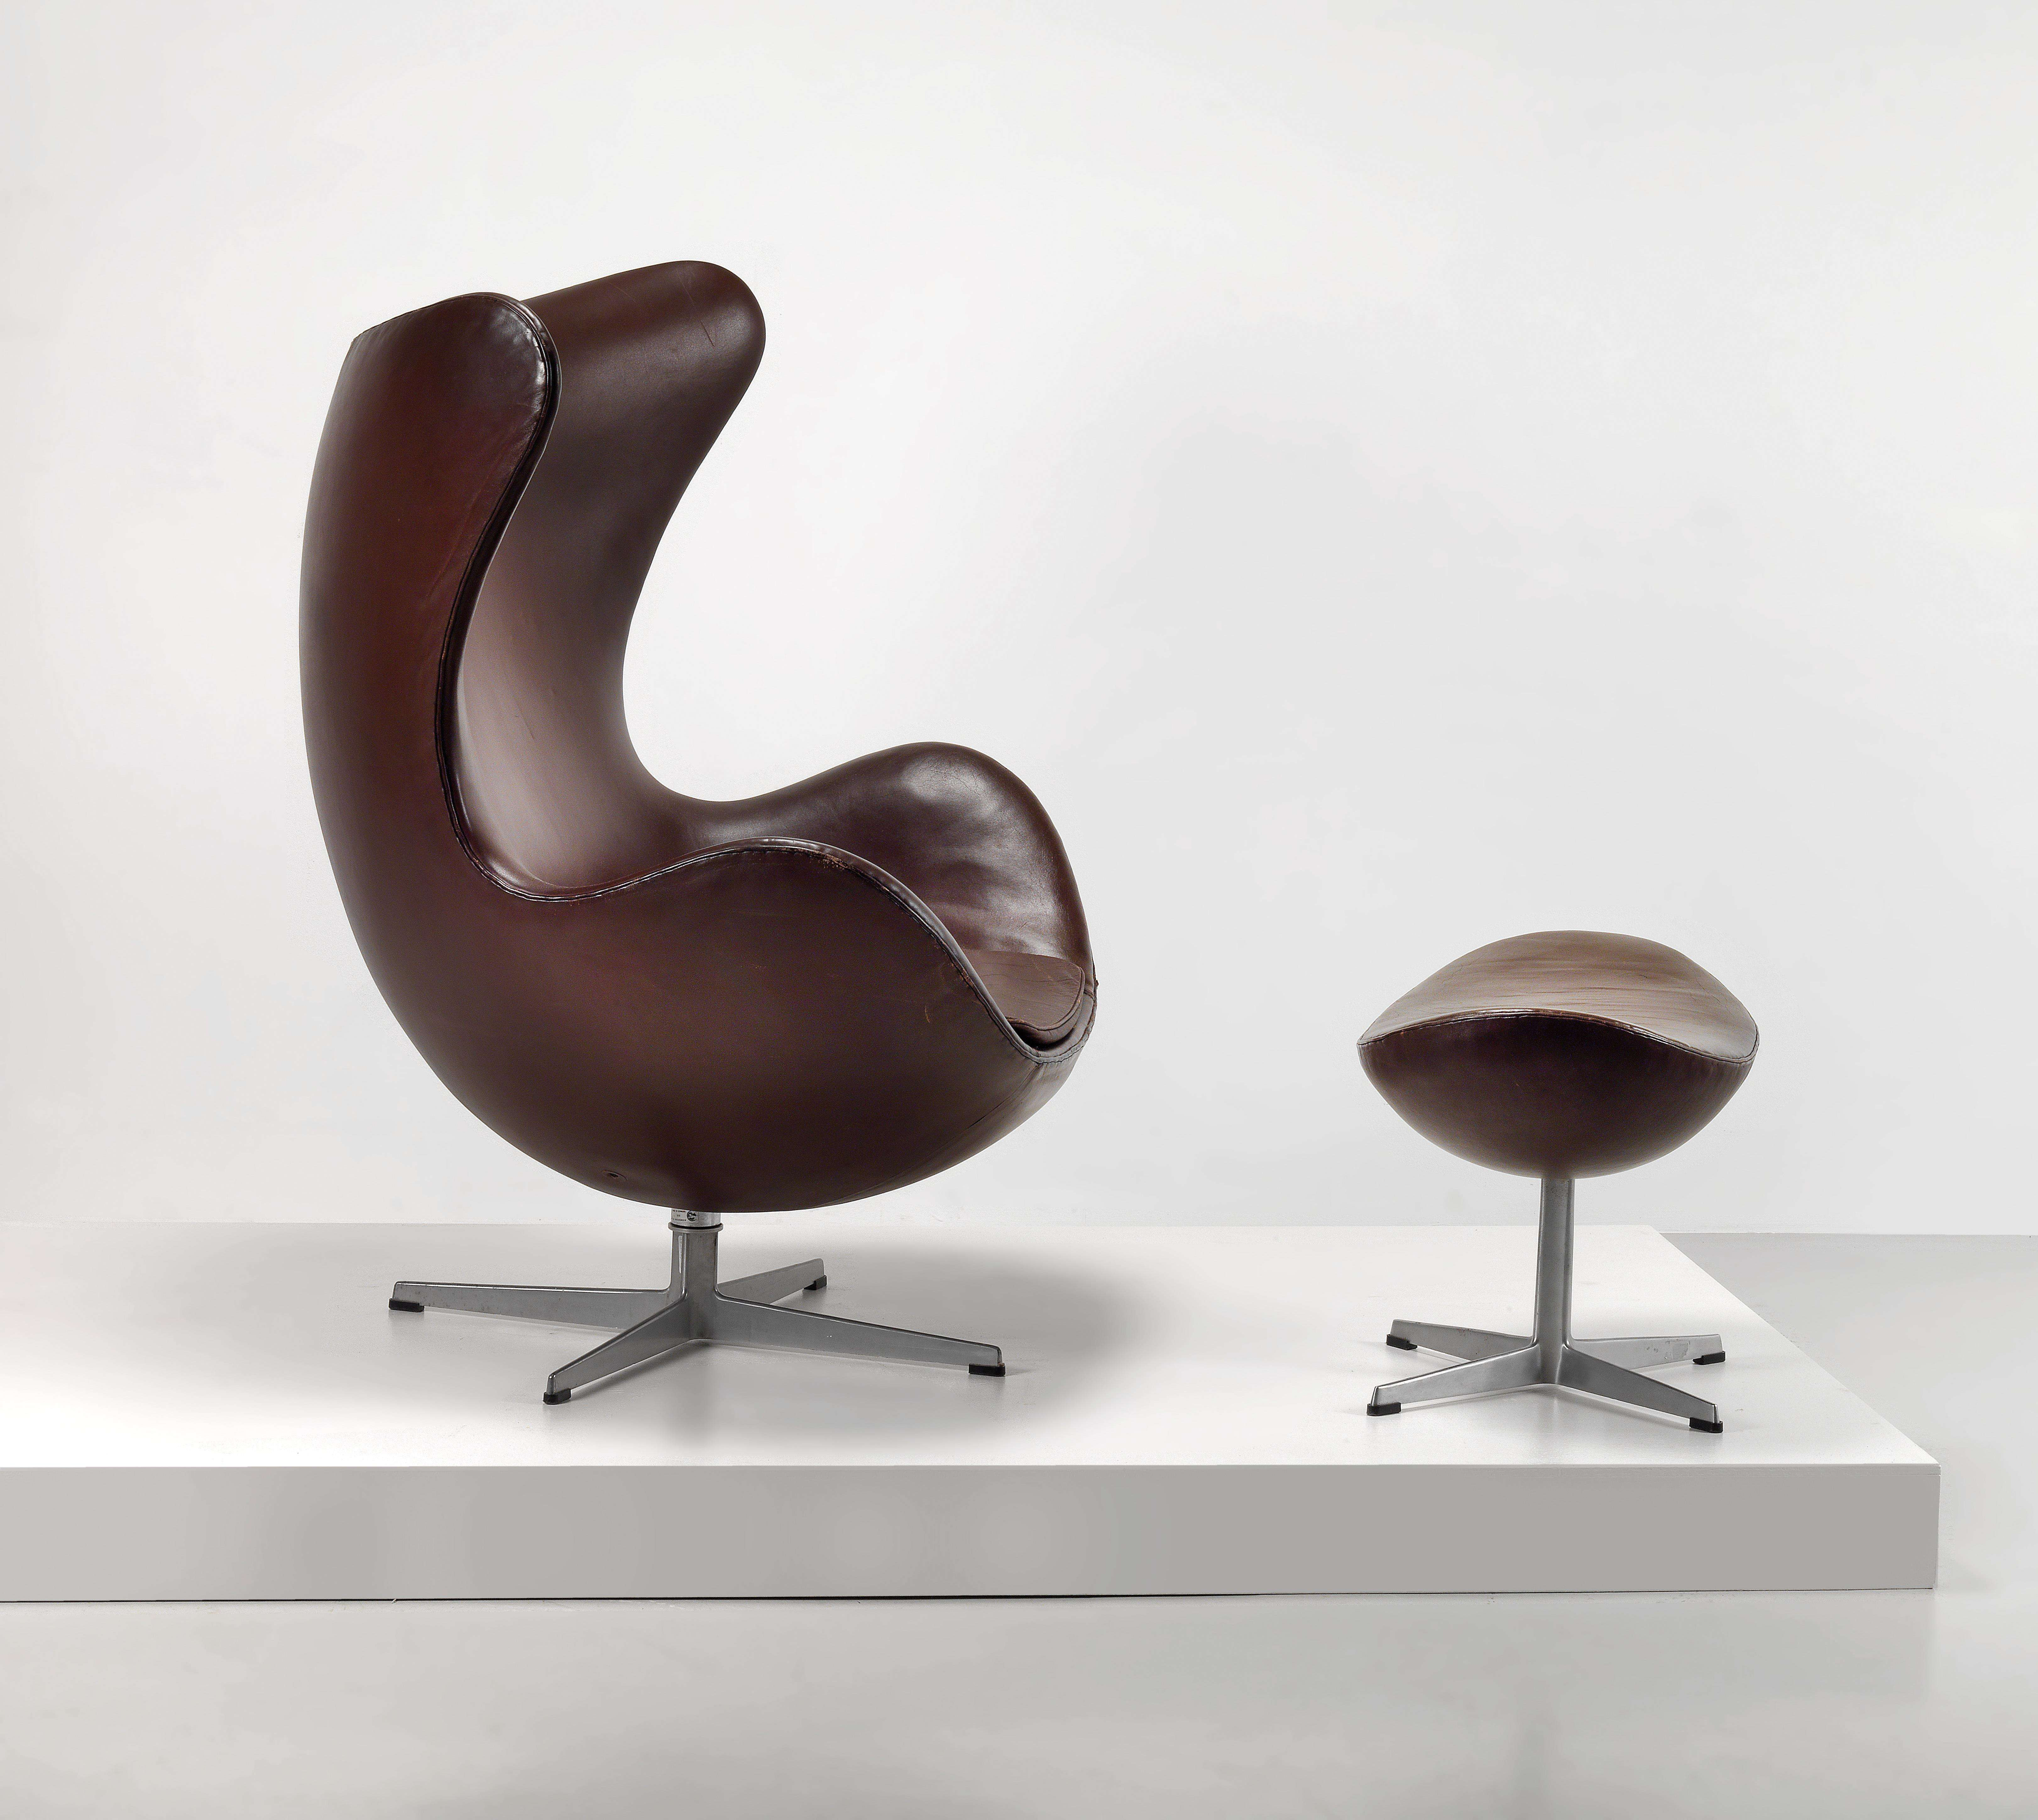 An Egg Chair Model No 3316 And Stool Designed By Arne Jacobsen Design 2016 06 16 Realized Price Eur 4 750 Dorotheum